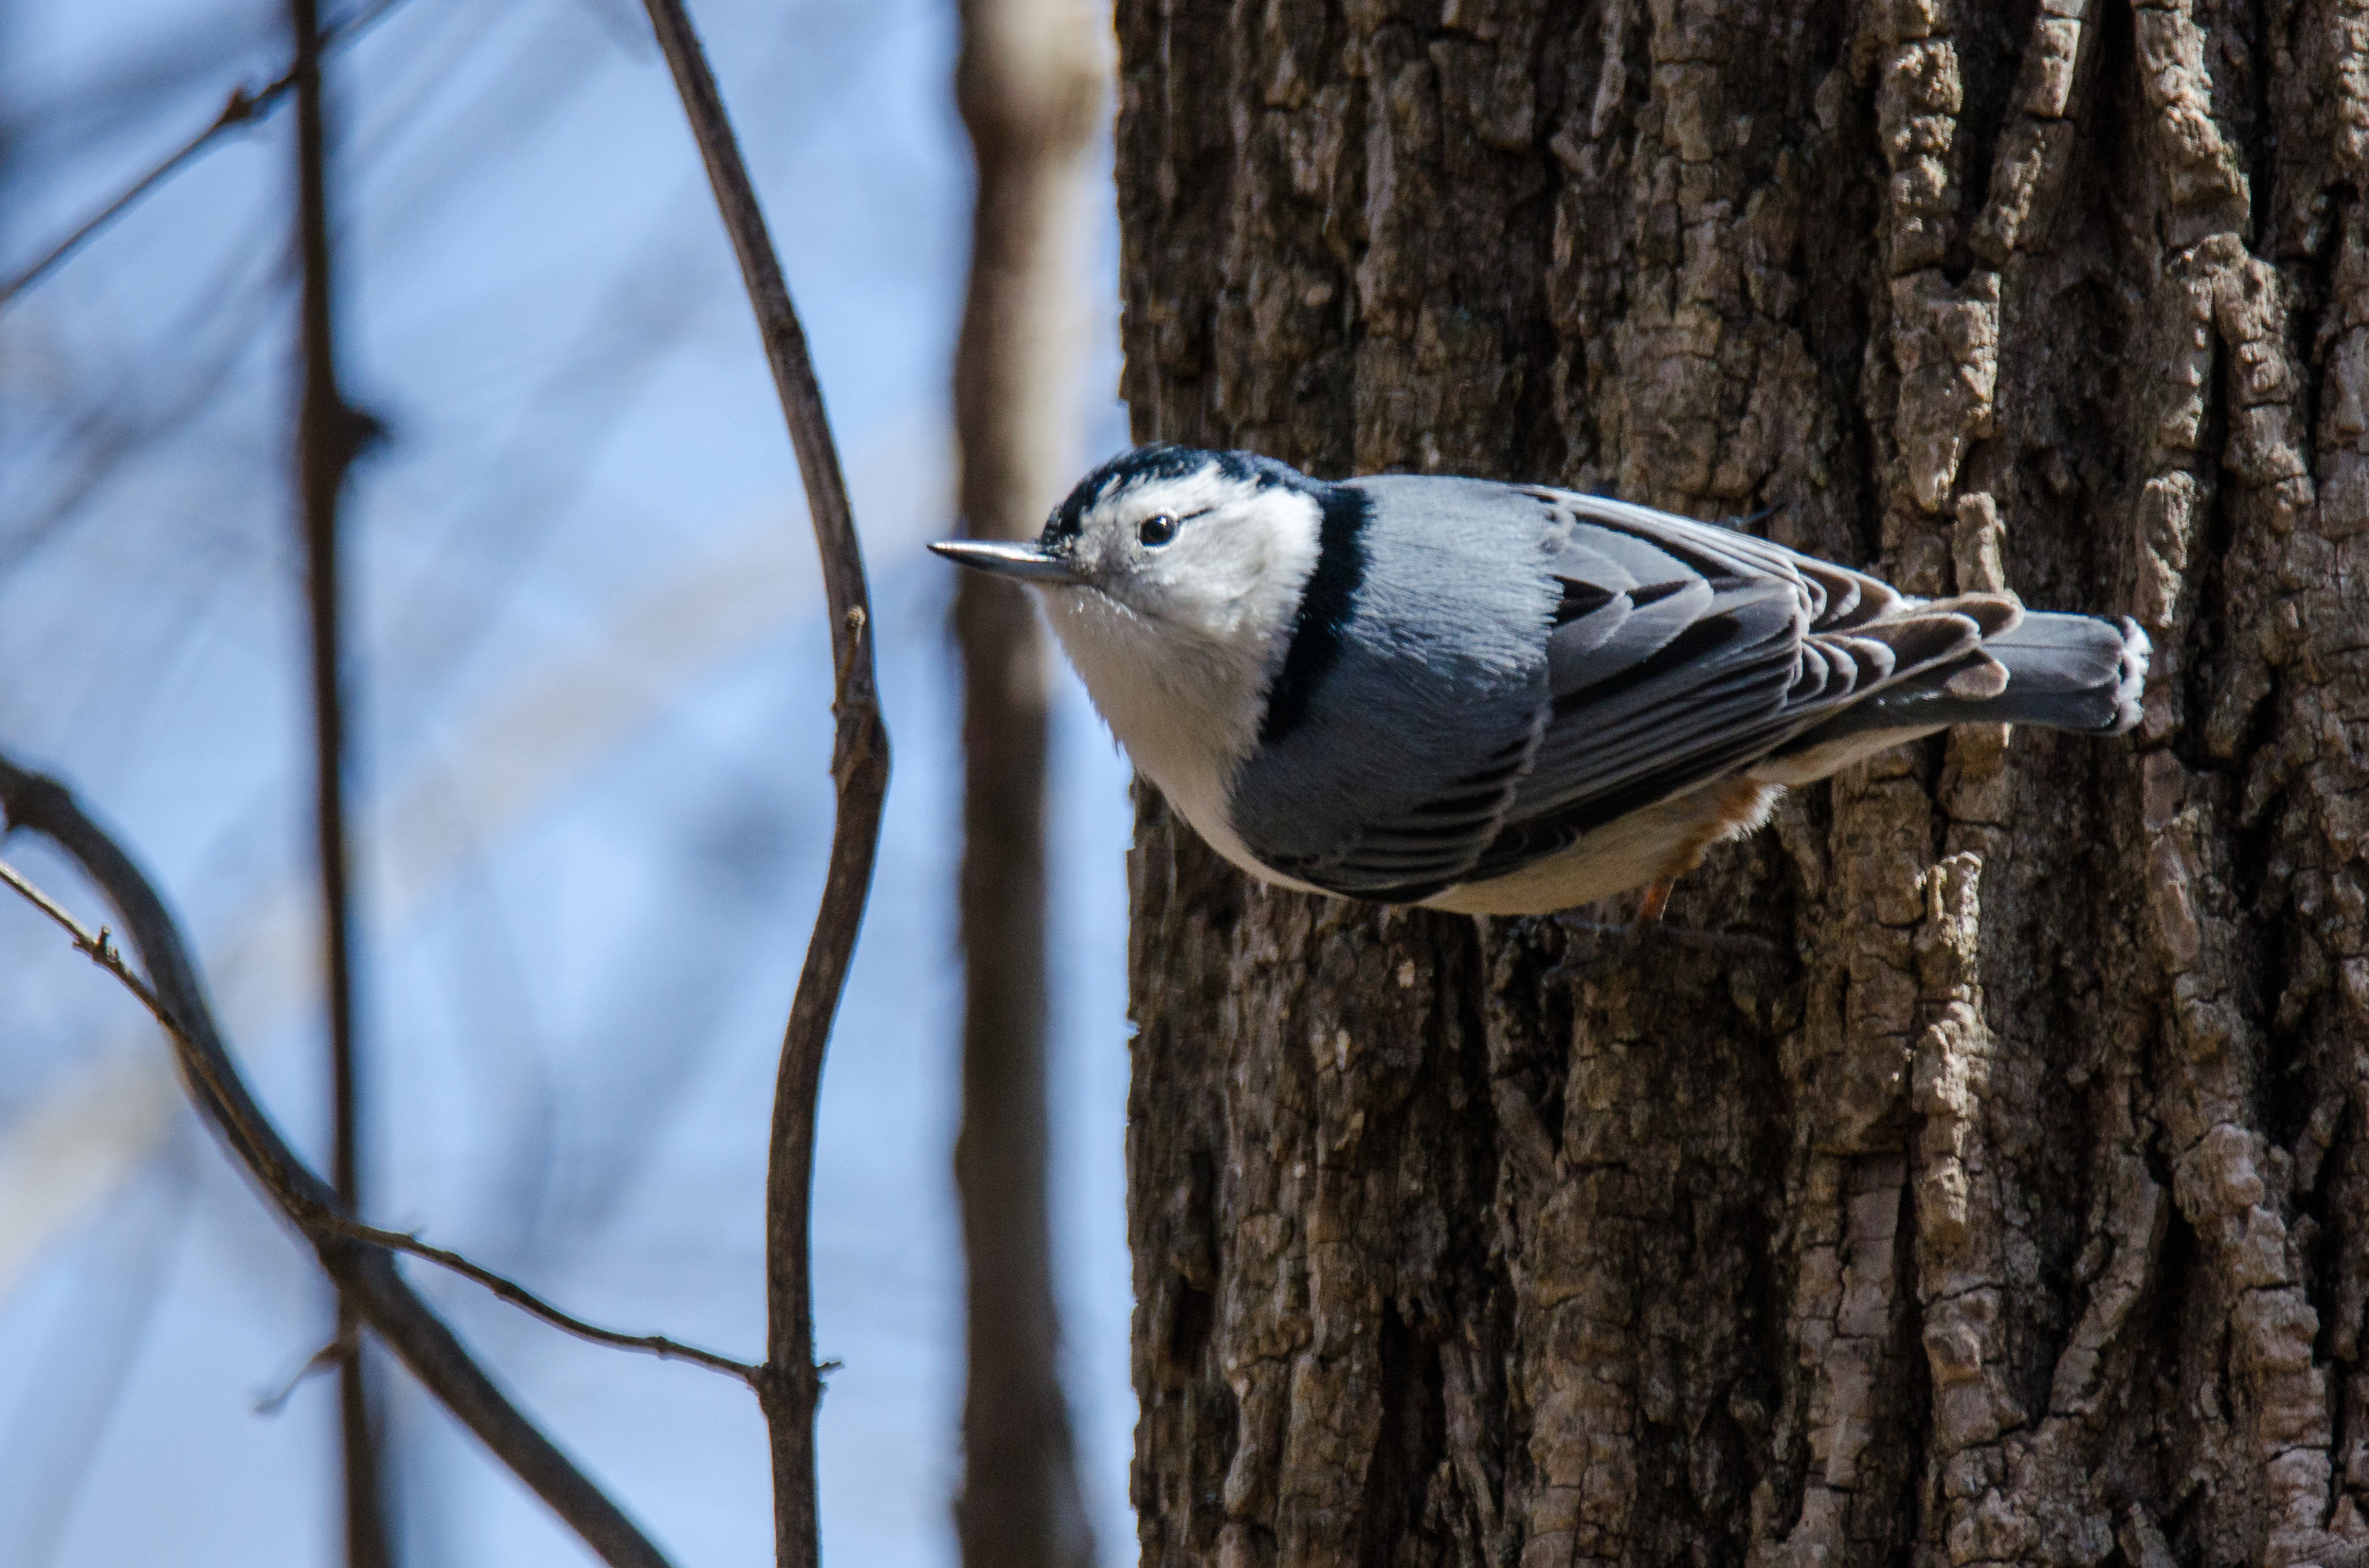 White Breasted Nuthatch  Nikon D7000 ISO 400 600mm f/6.3 1/1600